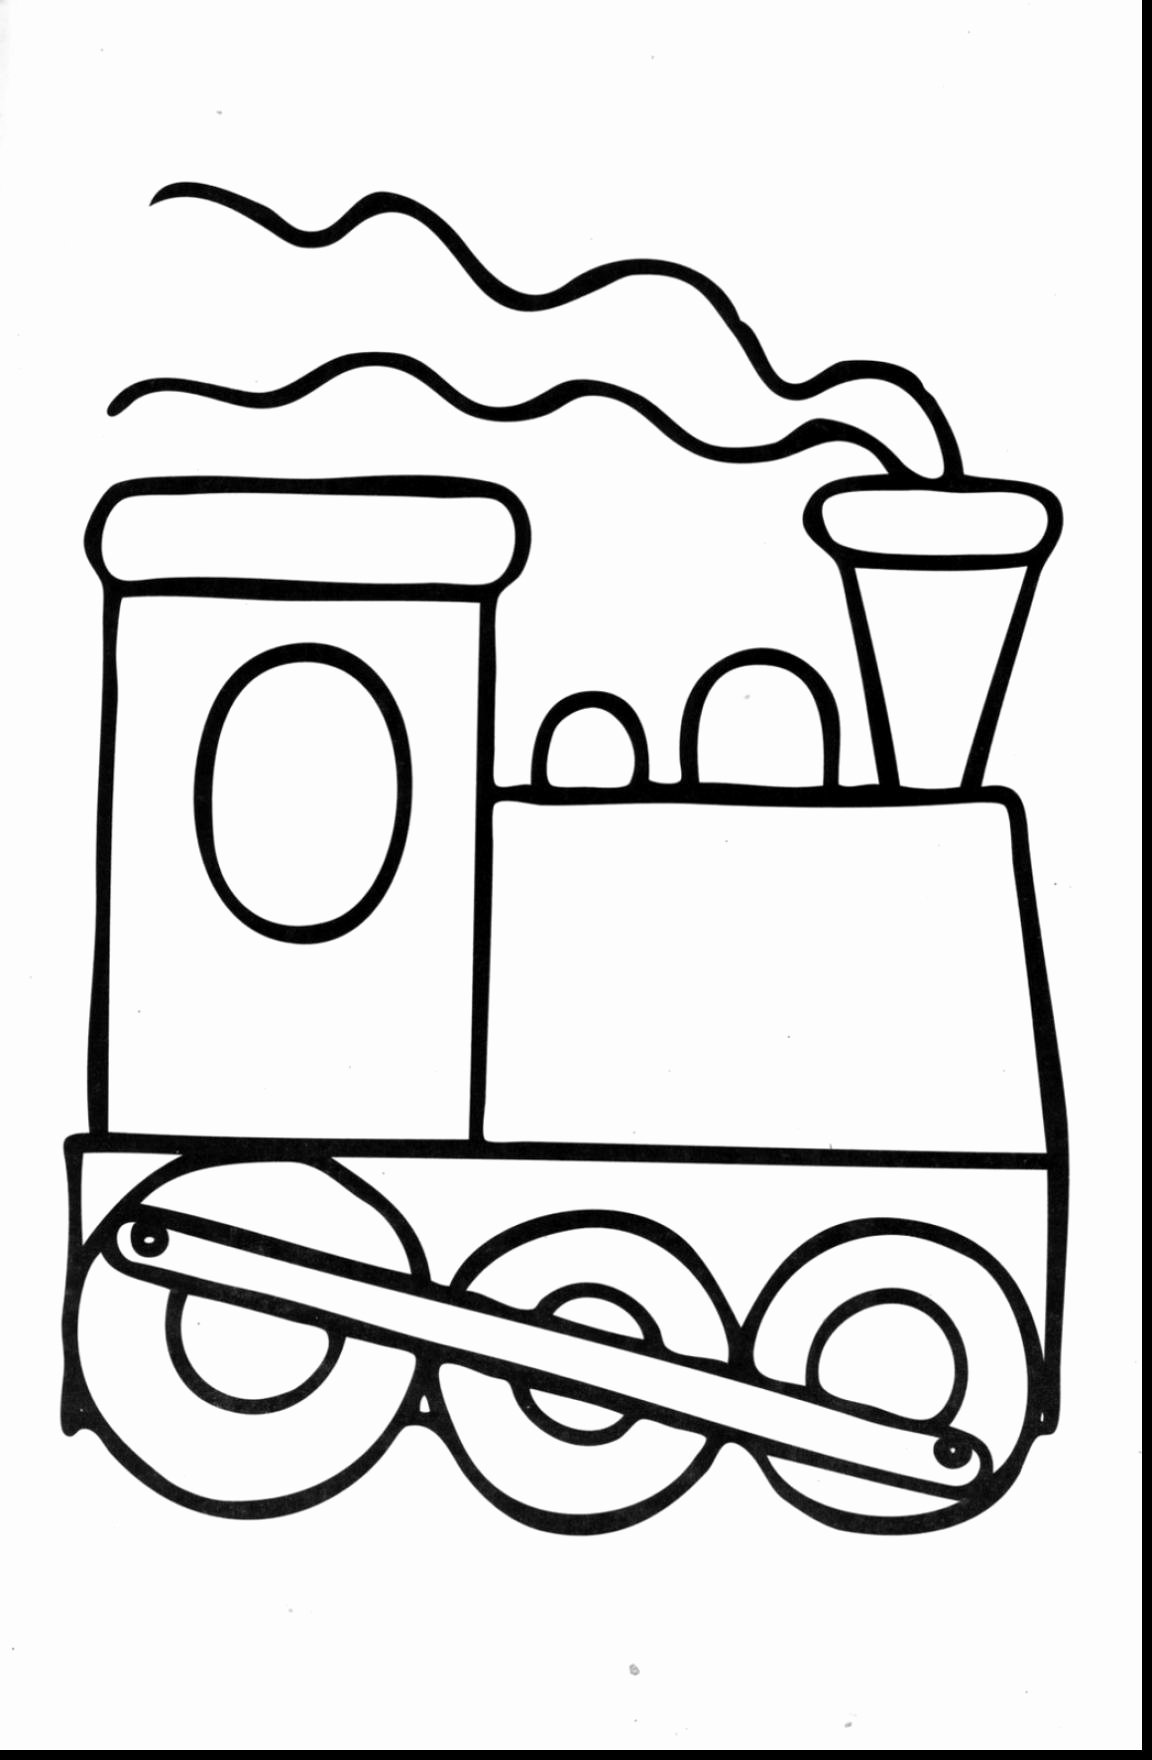 Coloring Activity Worksheets for Preschoolers Awesome Marvelous Coloring Pages for toddlers to Print